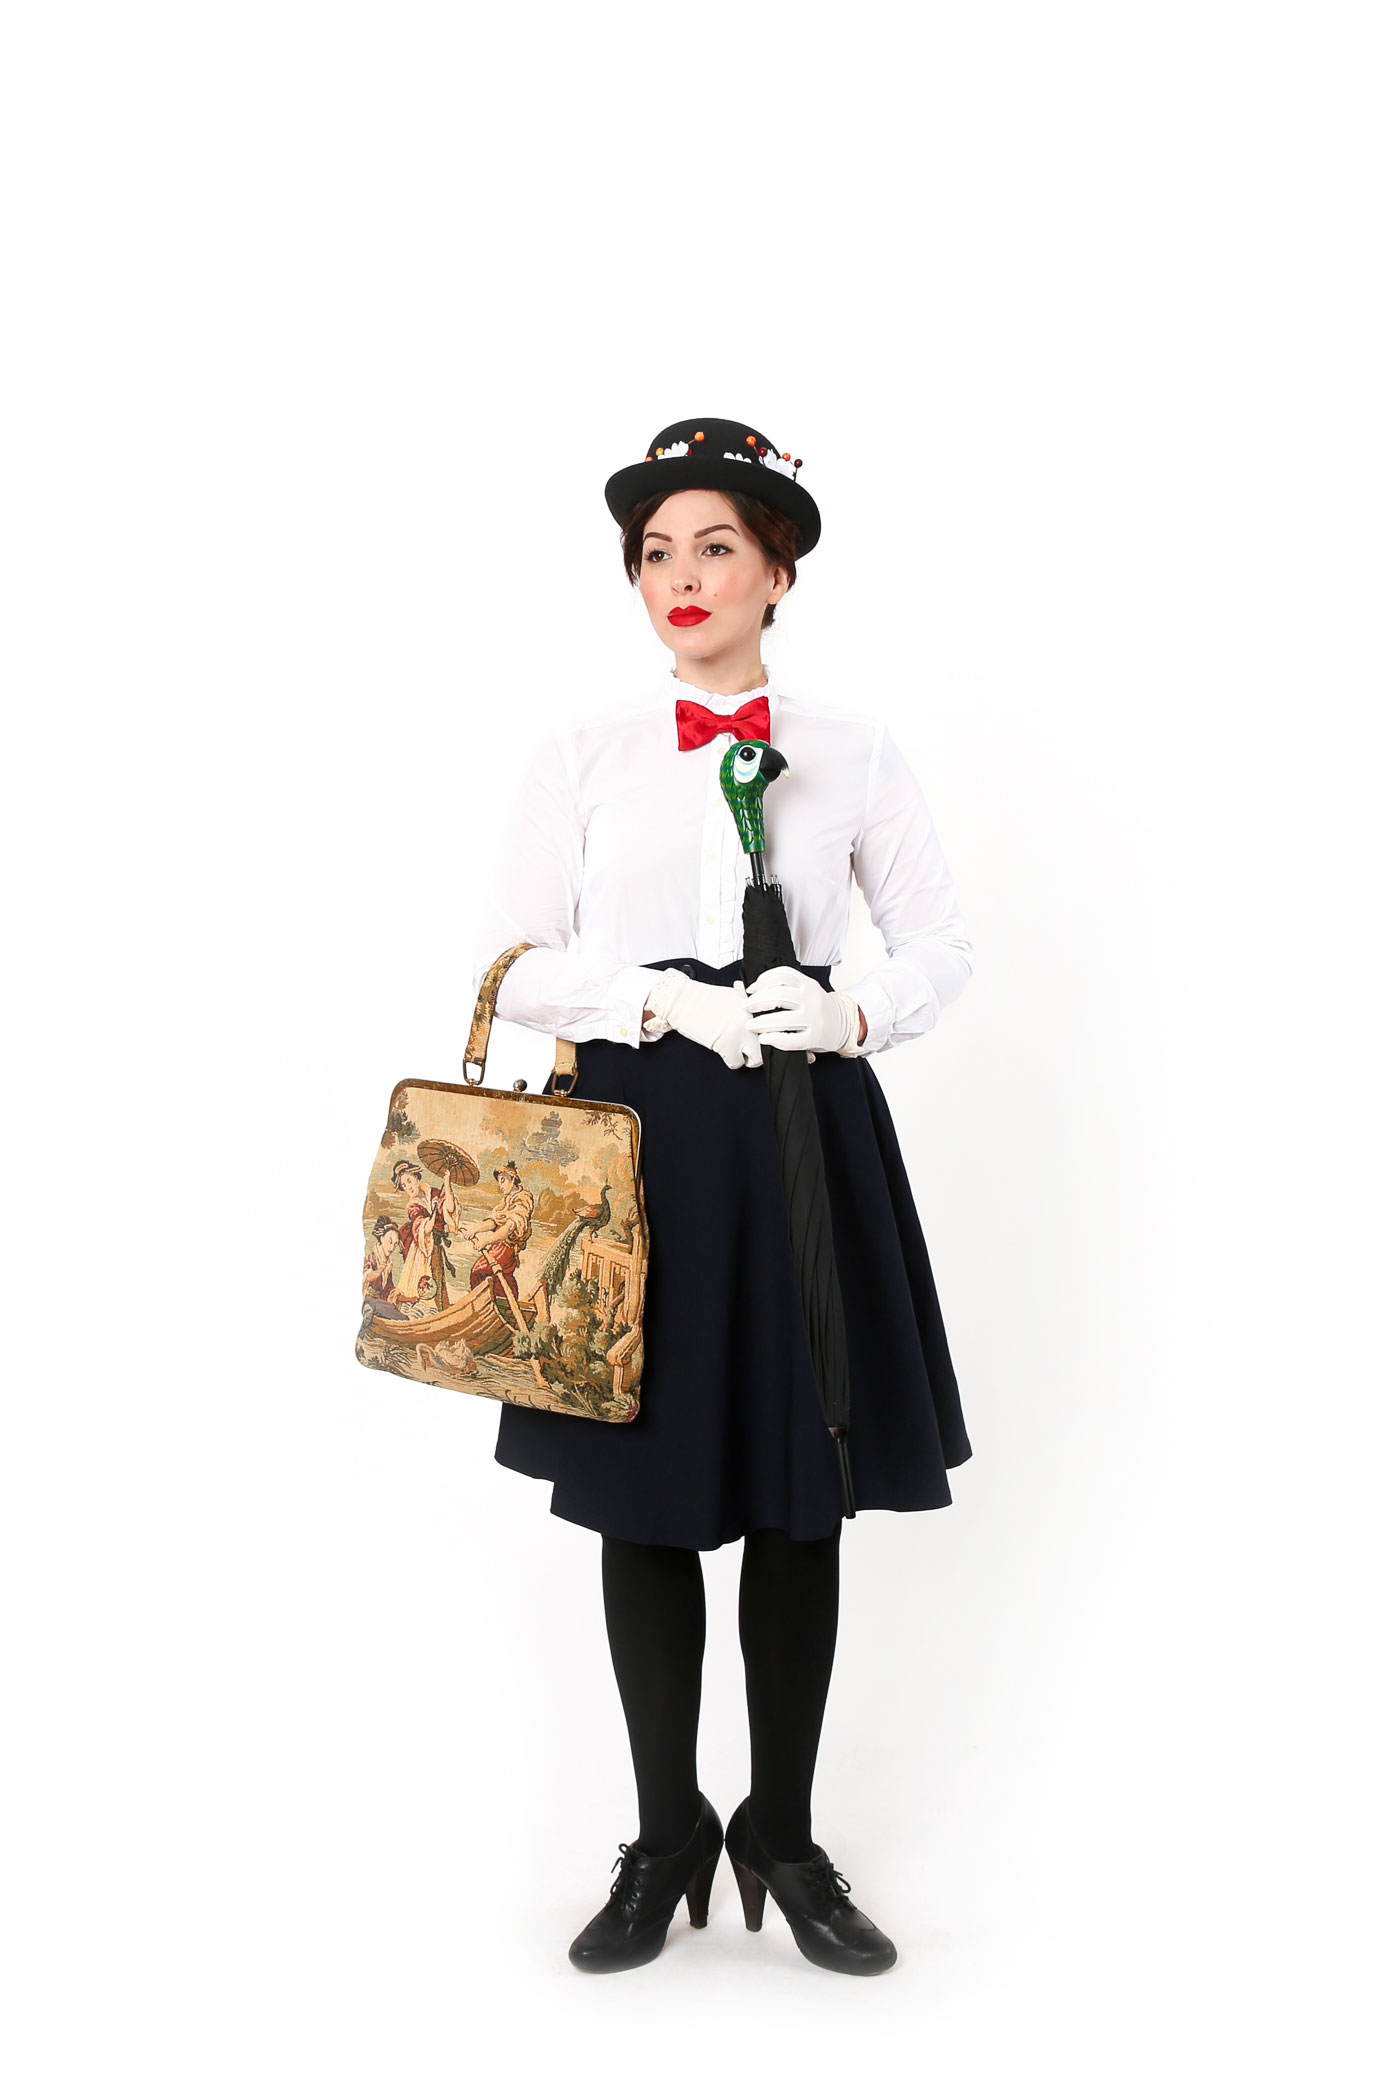 These Mary Poppins costume ideas are practically perfect in every way. Discover the secrets of creating your own incredible DIY costume this year. Discover the secrets of creating your own incredible DIY costume this year.